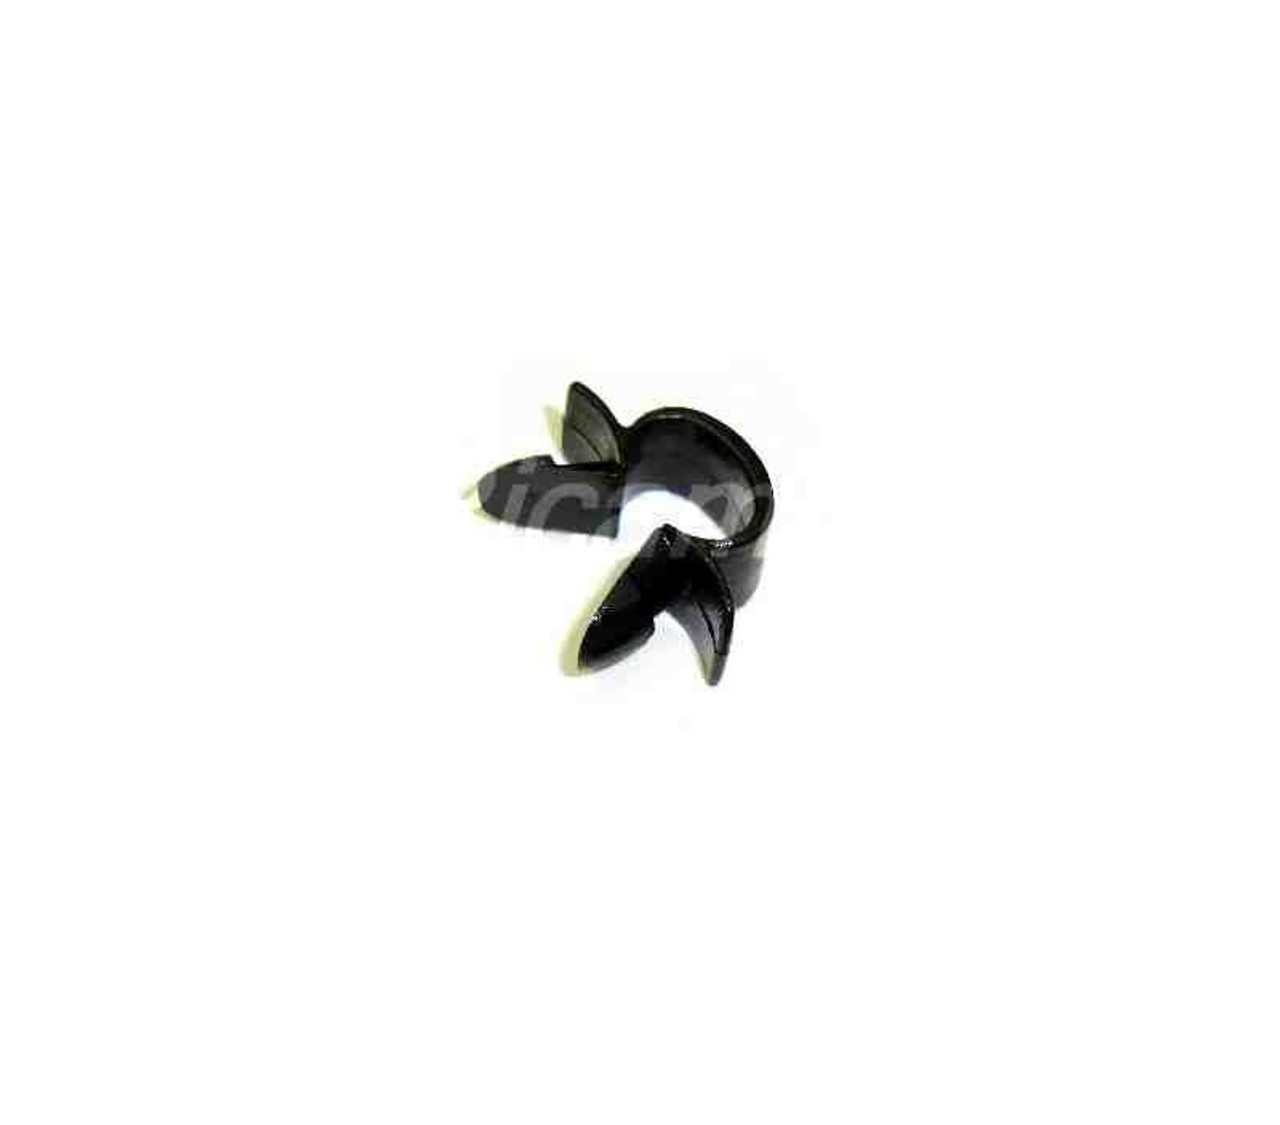 Body Clip for Cable or Hose